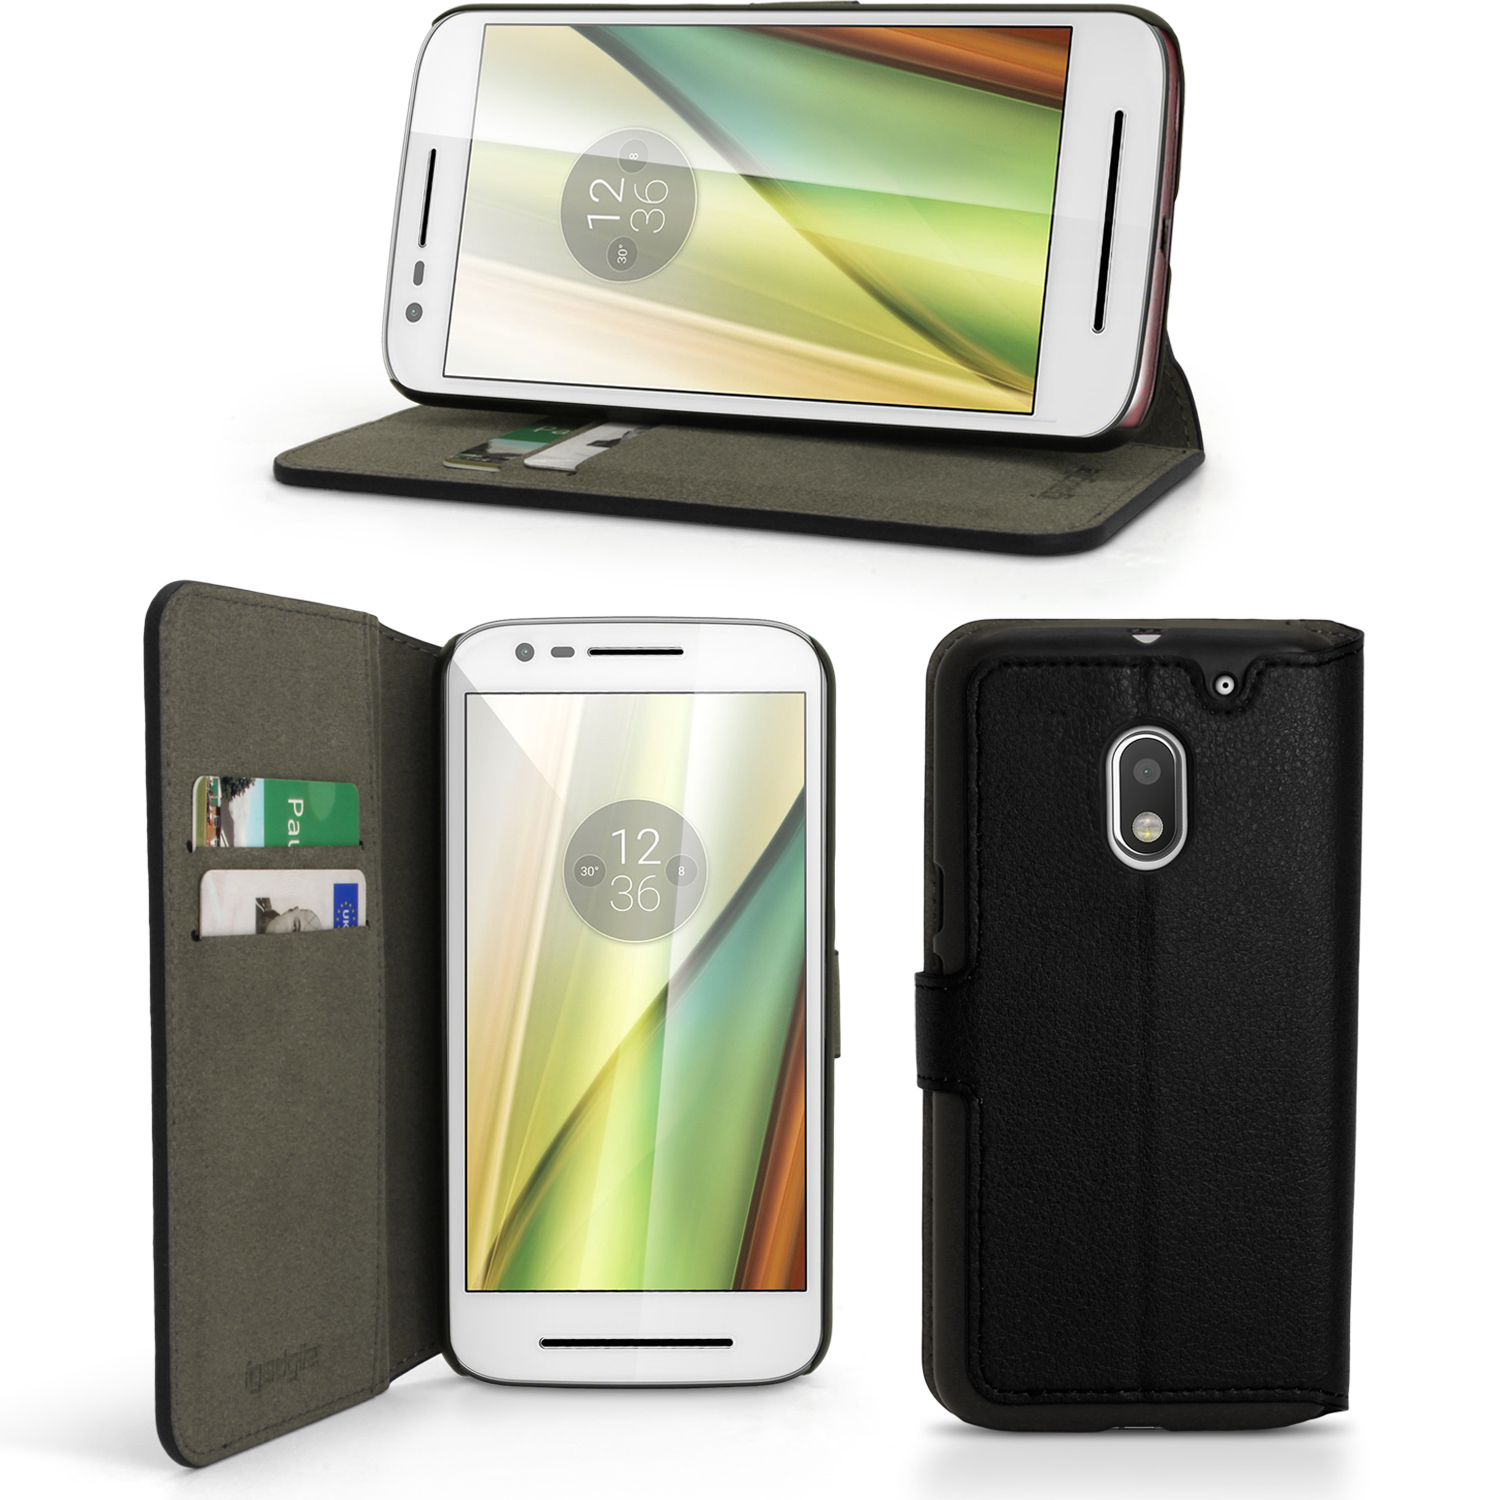 iGadgitz Wallet Flip PU Leather Case Cover for Motorola Moto E 3rd Generation (E3) With Card Slots + Stand + Screen Prot